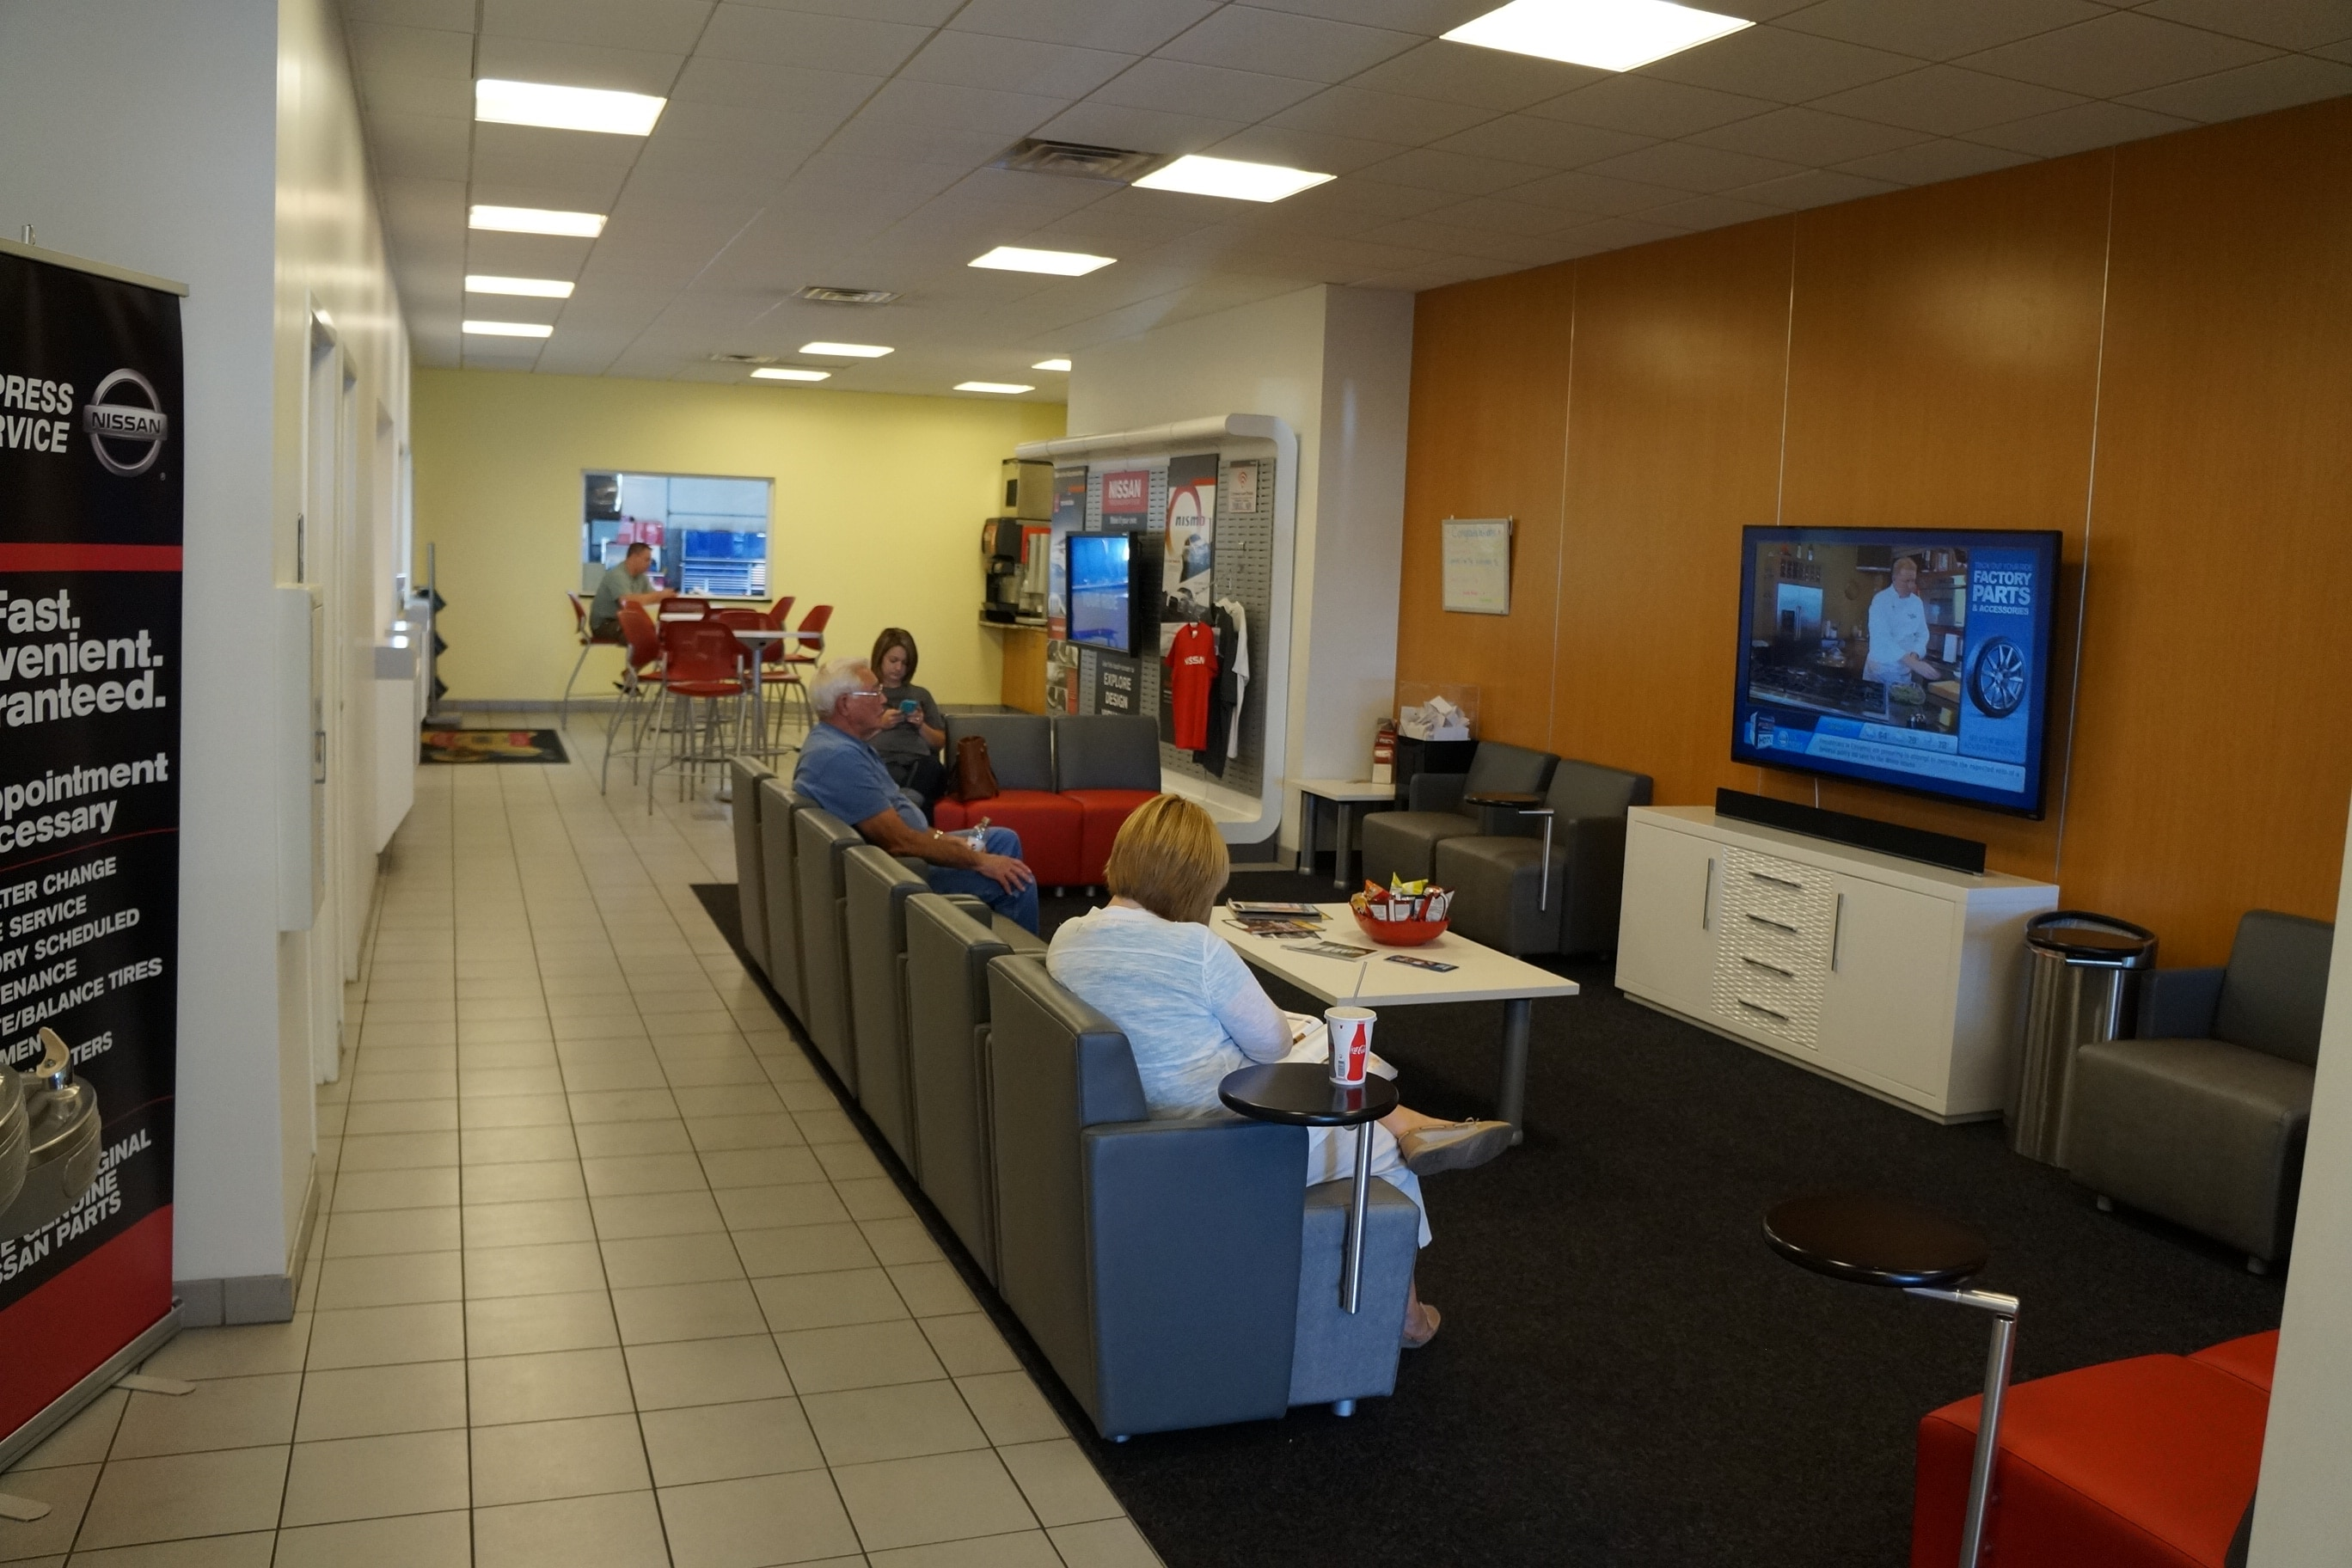 Auto Centers Nissan Serving Alton, IL Waiting Area